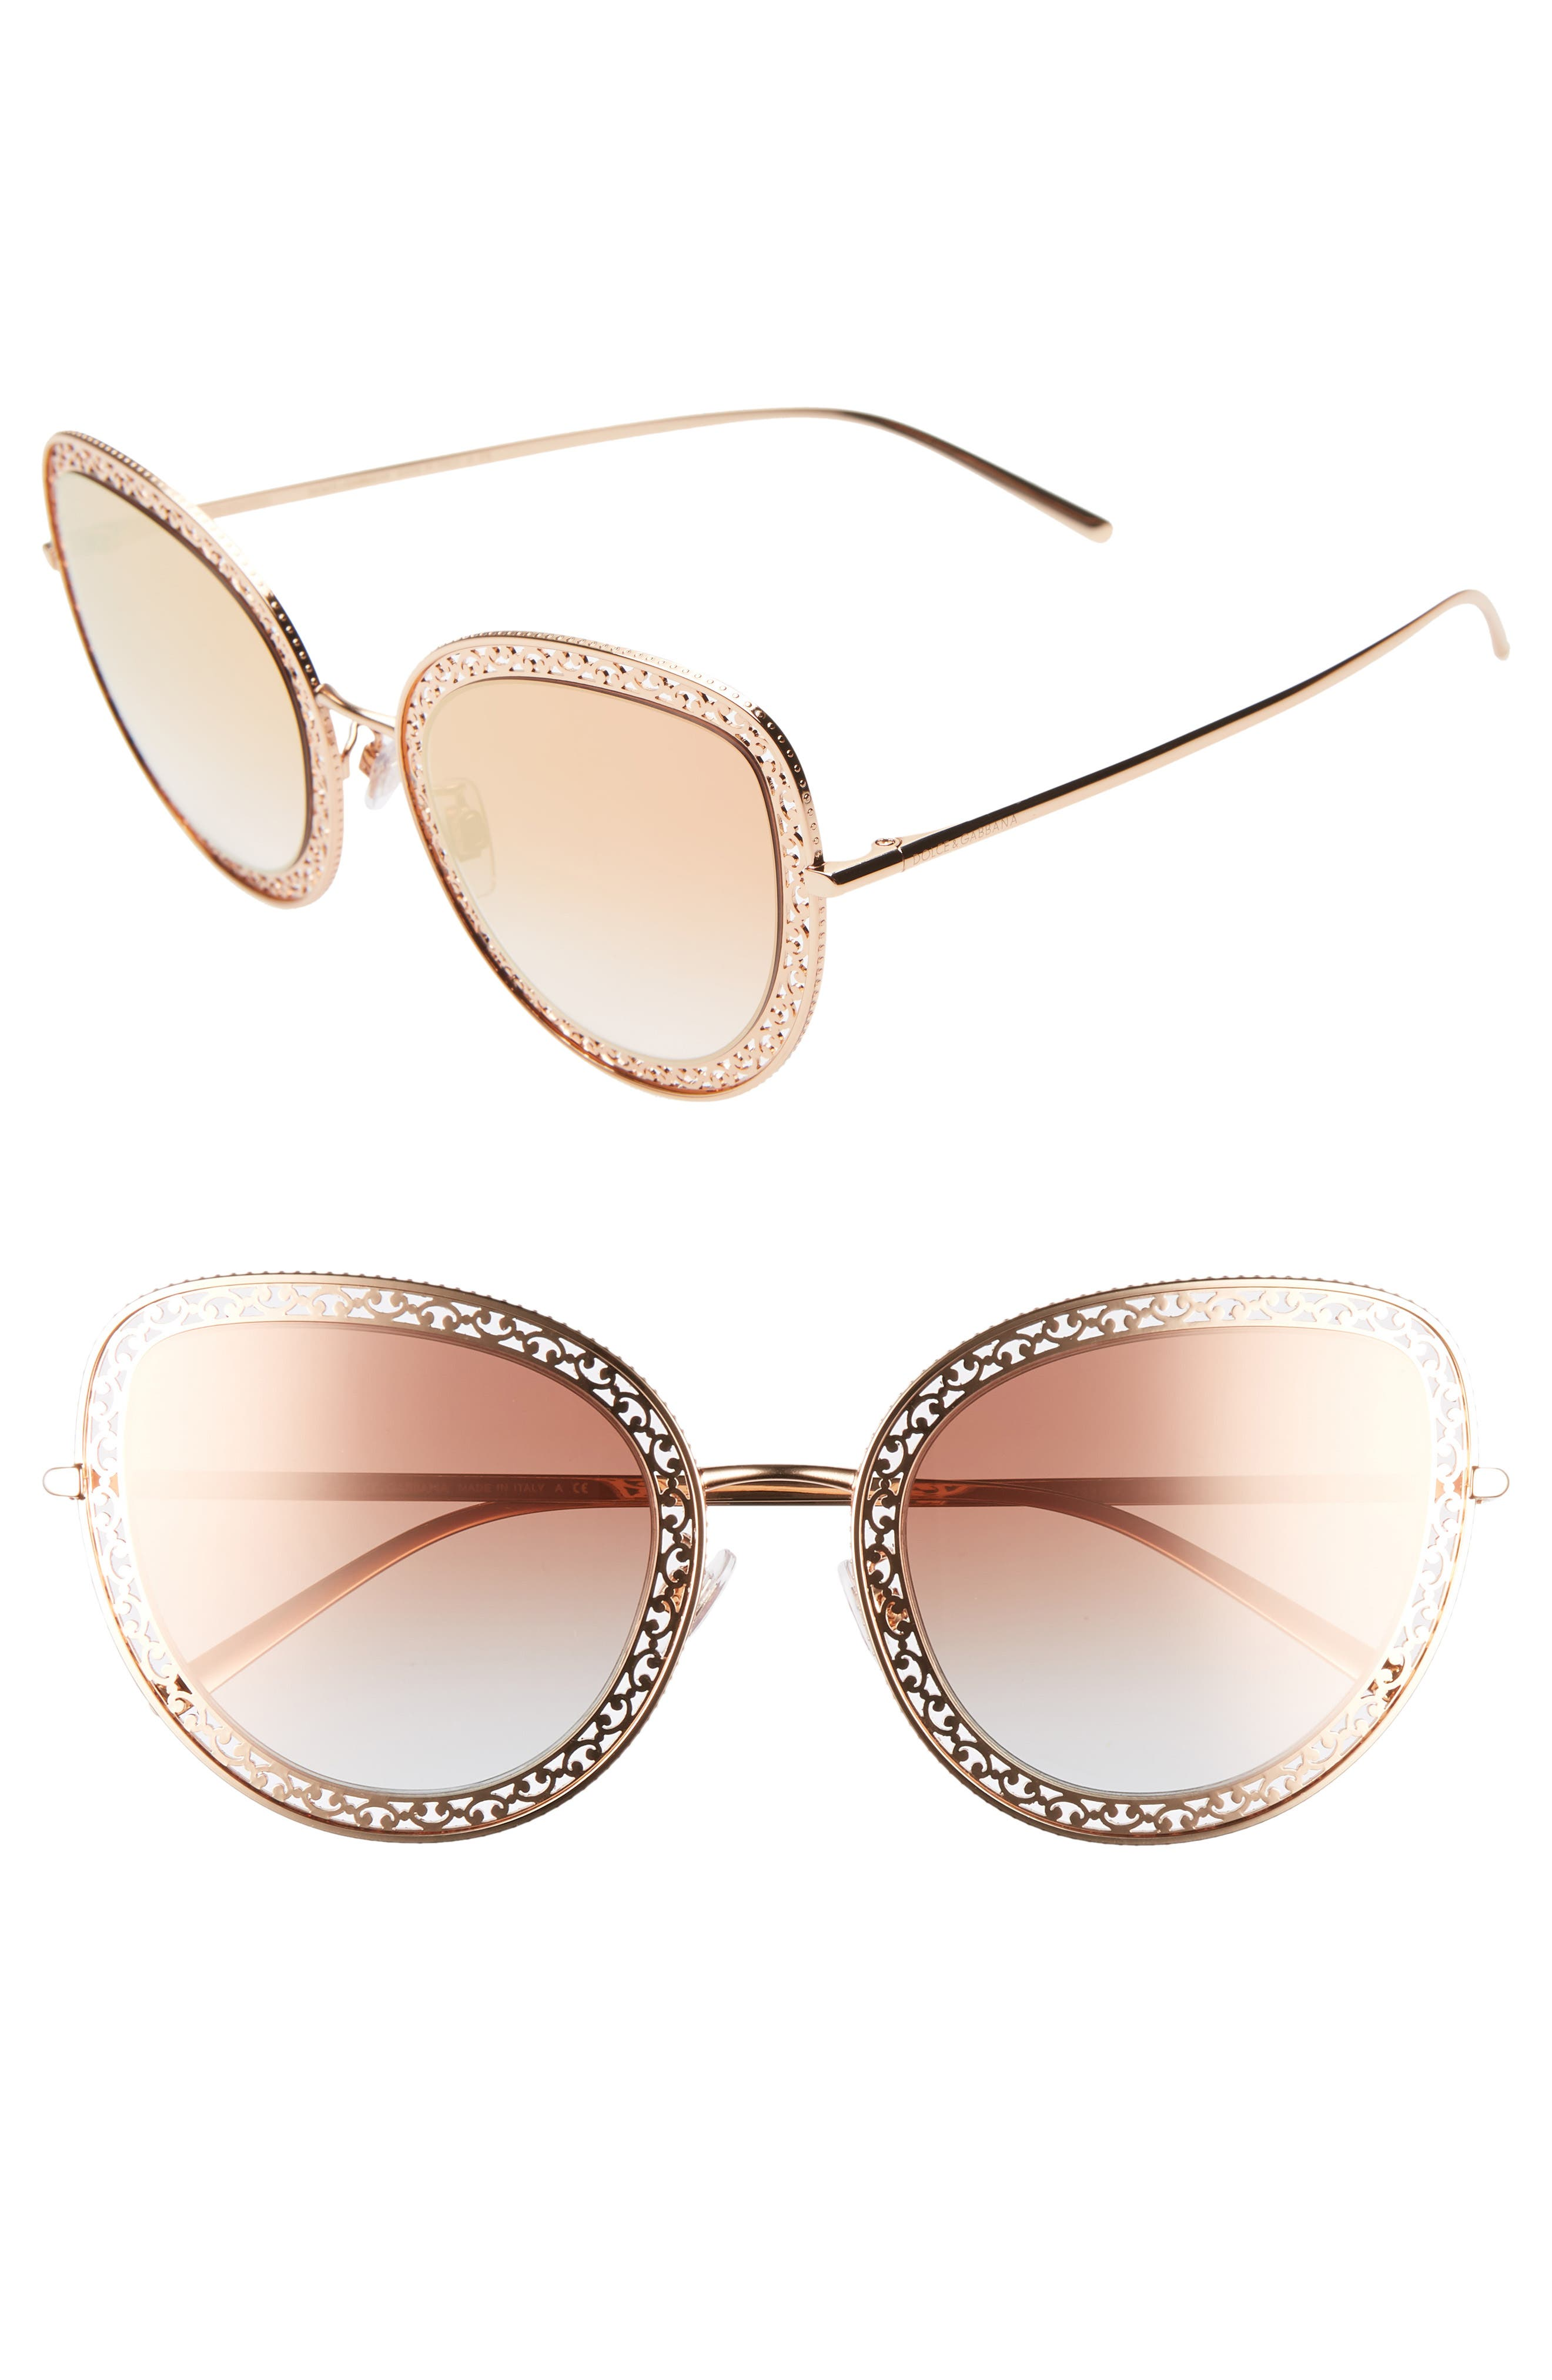 d5c7ec3a0be Dolce   gabbana 5m Cat Eye Sunglasses - Gold  Pink